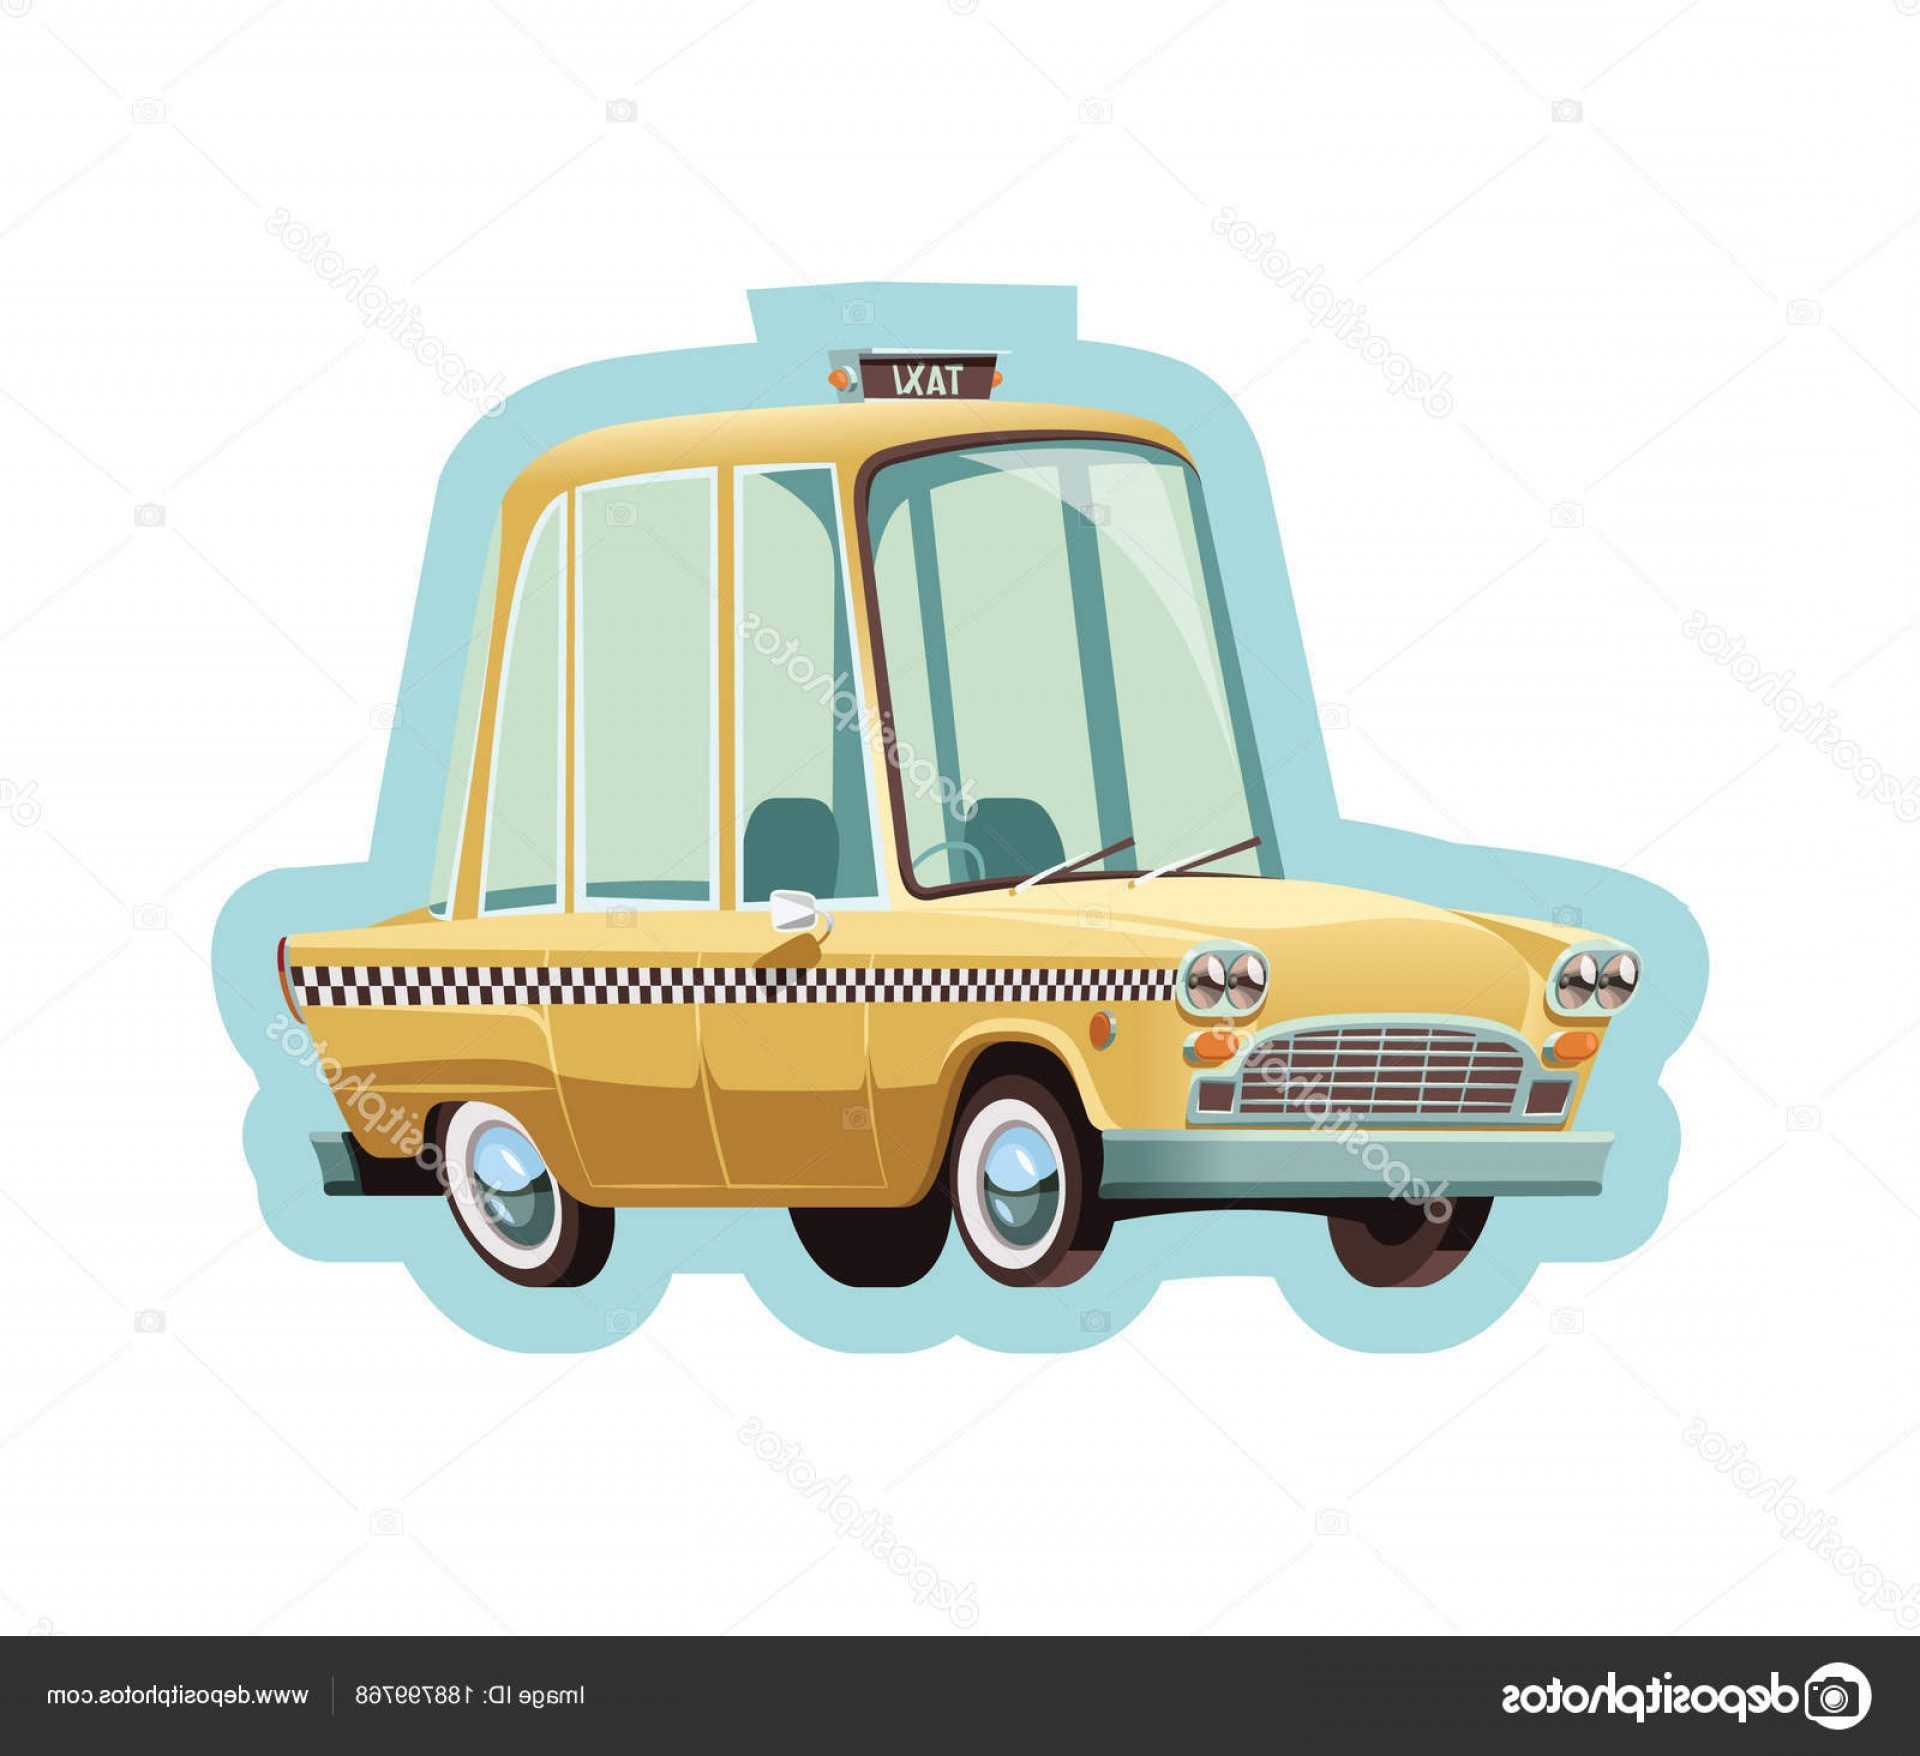 New York Taxi Cab Vector: Stock Illustration Old New York Yellow Taxi